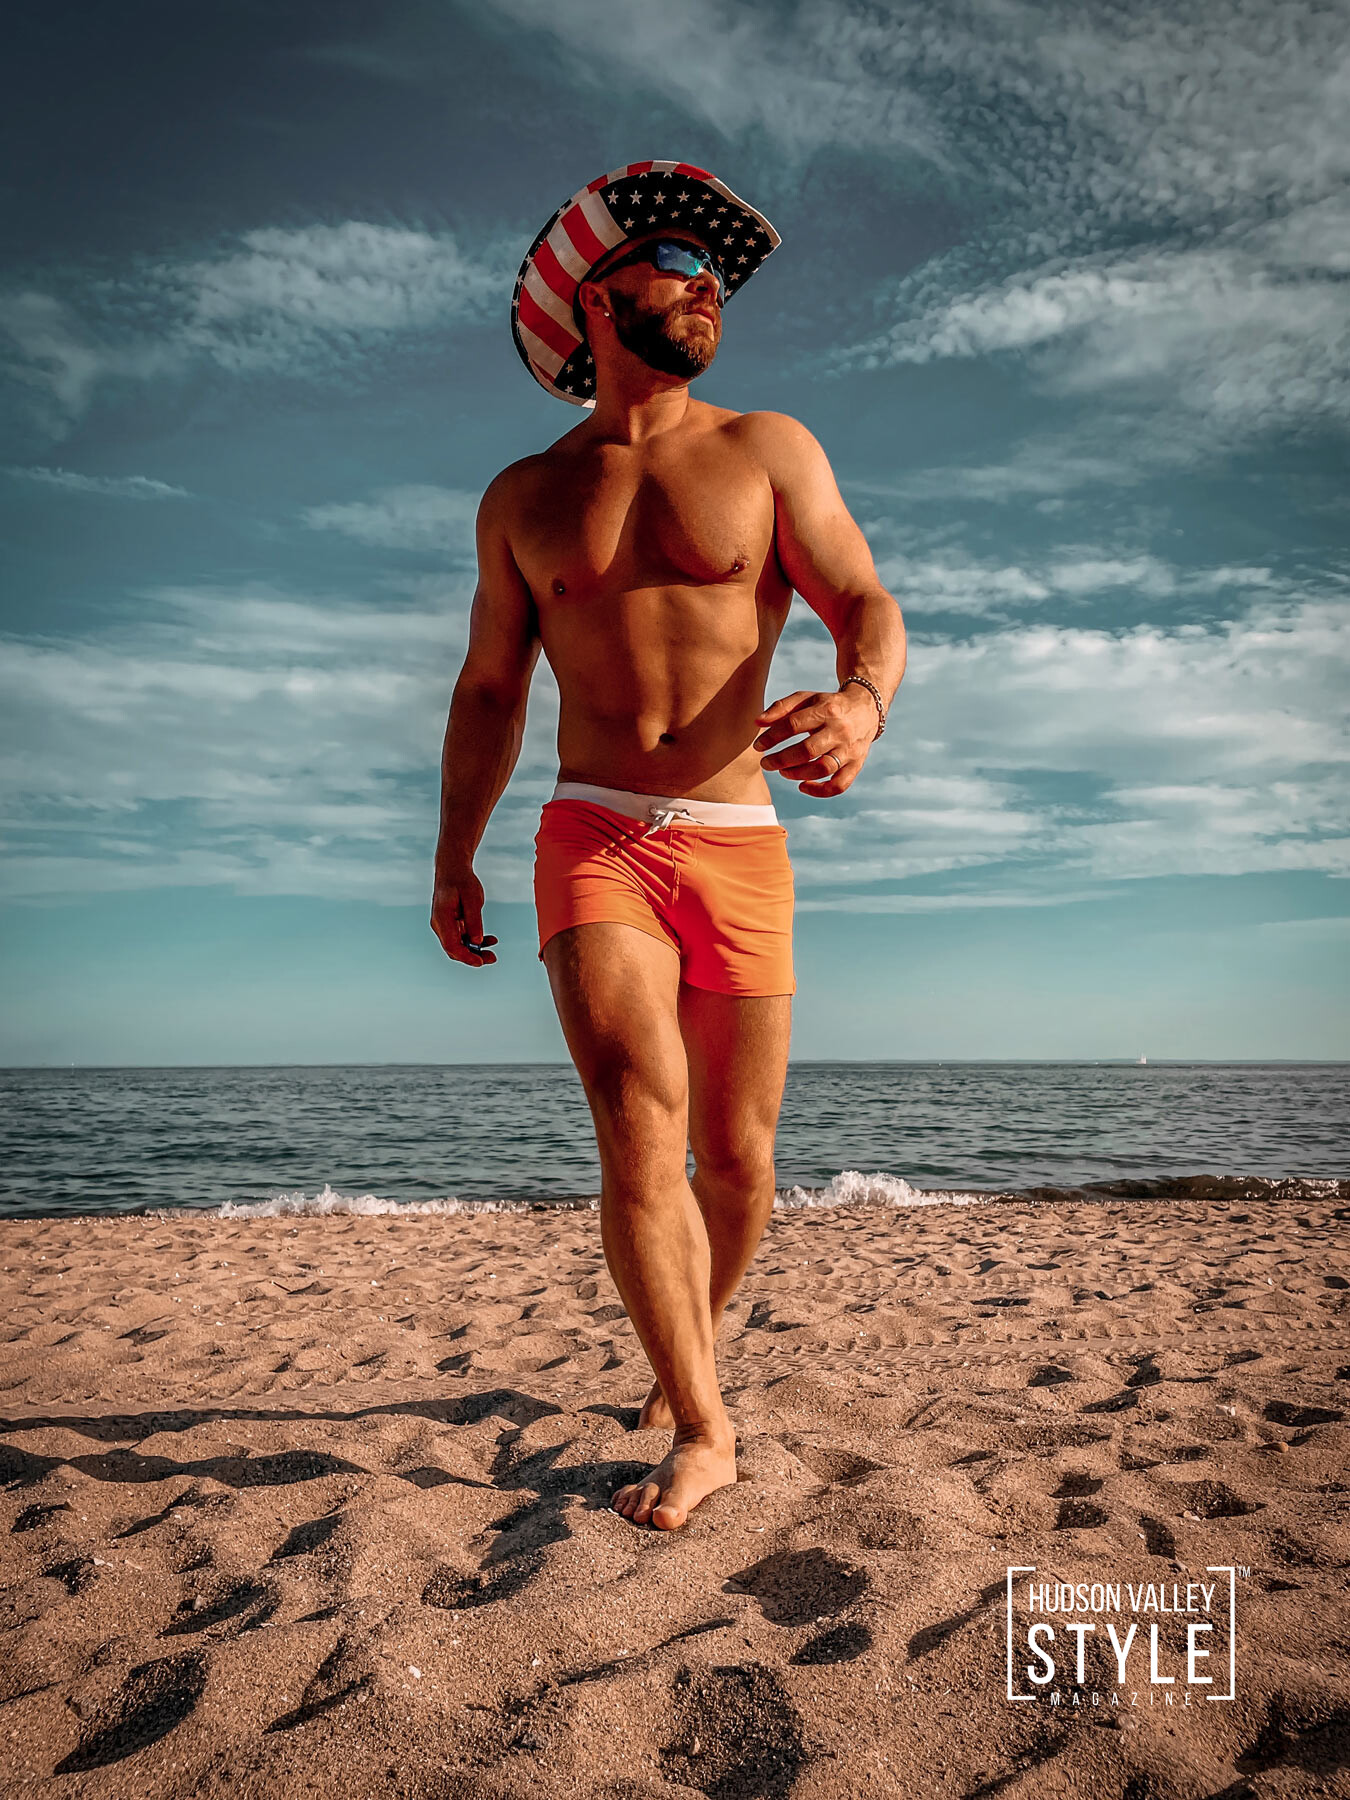 Weight Loss Motivation is the Key to Your Beach Body Goals – Fitness Motivation with Certified Elite Fitness Trainer and Bodybuilding Coach Maxwell Alexander